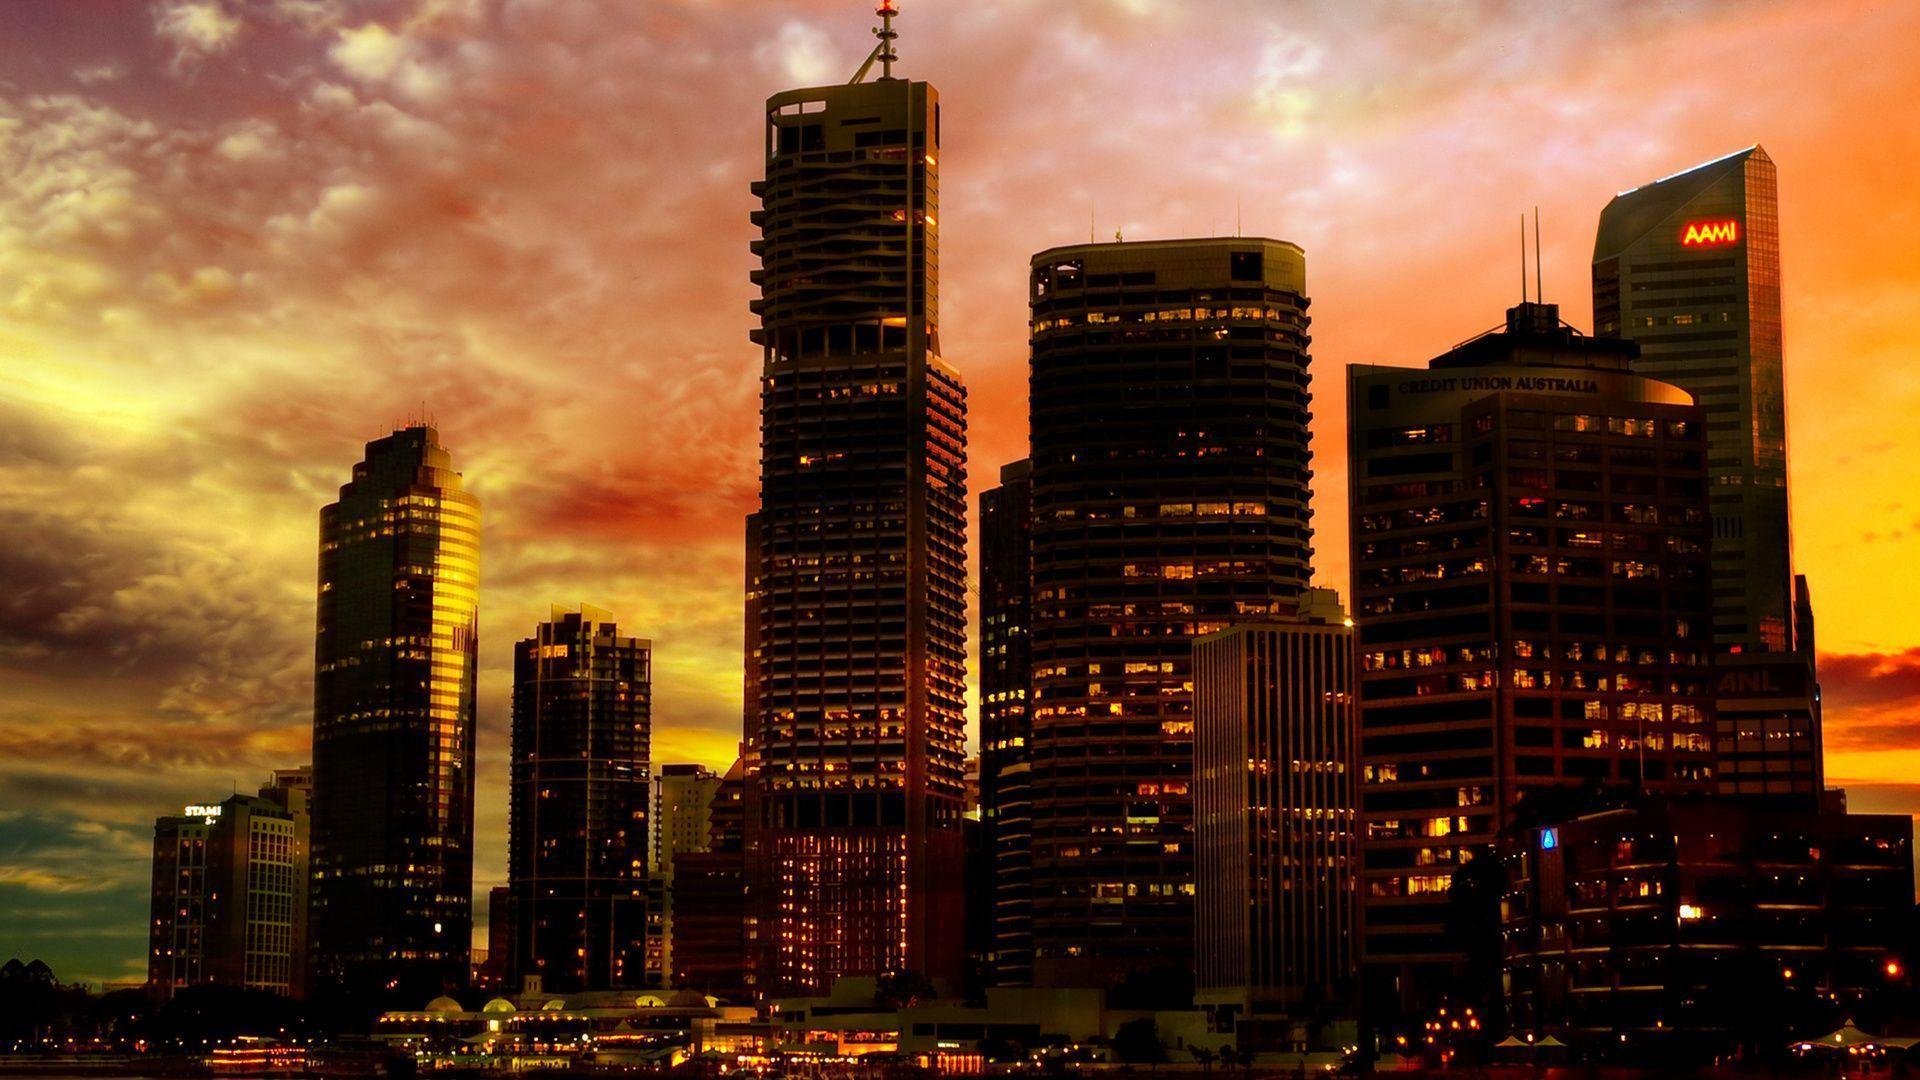 Download City Backgrounds 18315 1920x1080 px High Resolution